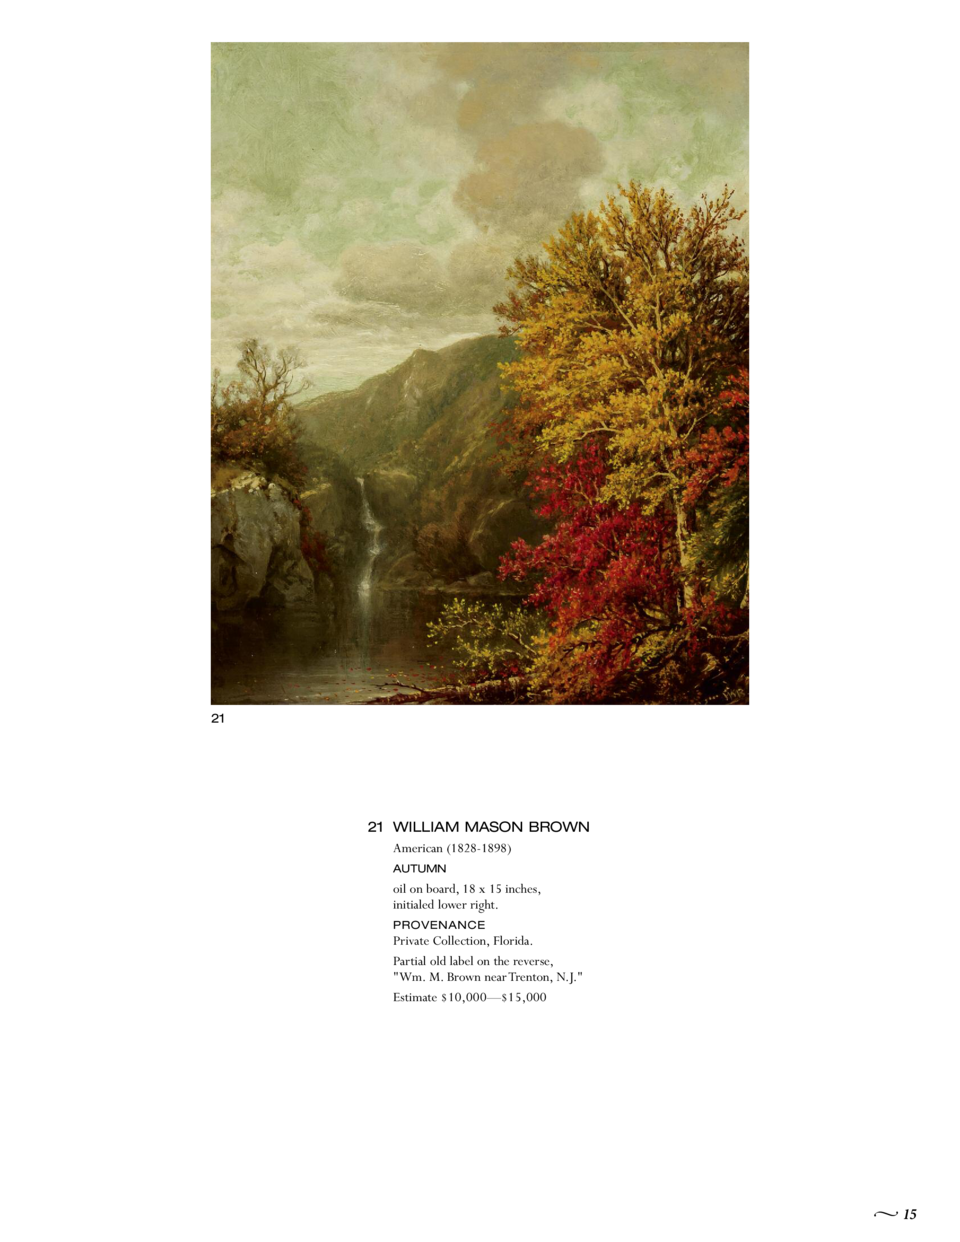 21  21 WILLIAM MASON BROWN American  1828-1898  AUTUMN  oil on board, 18 x 15 inches, initialed lower right. Private Colle...